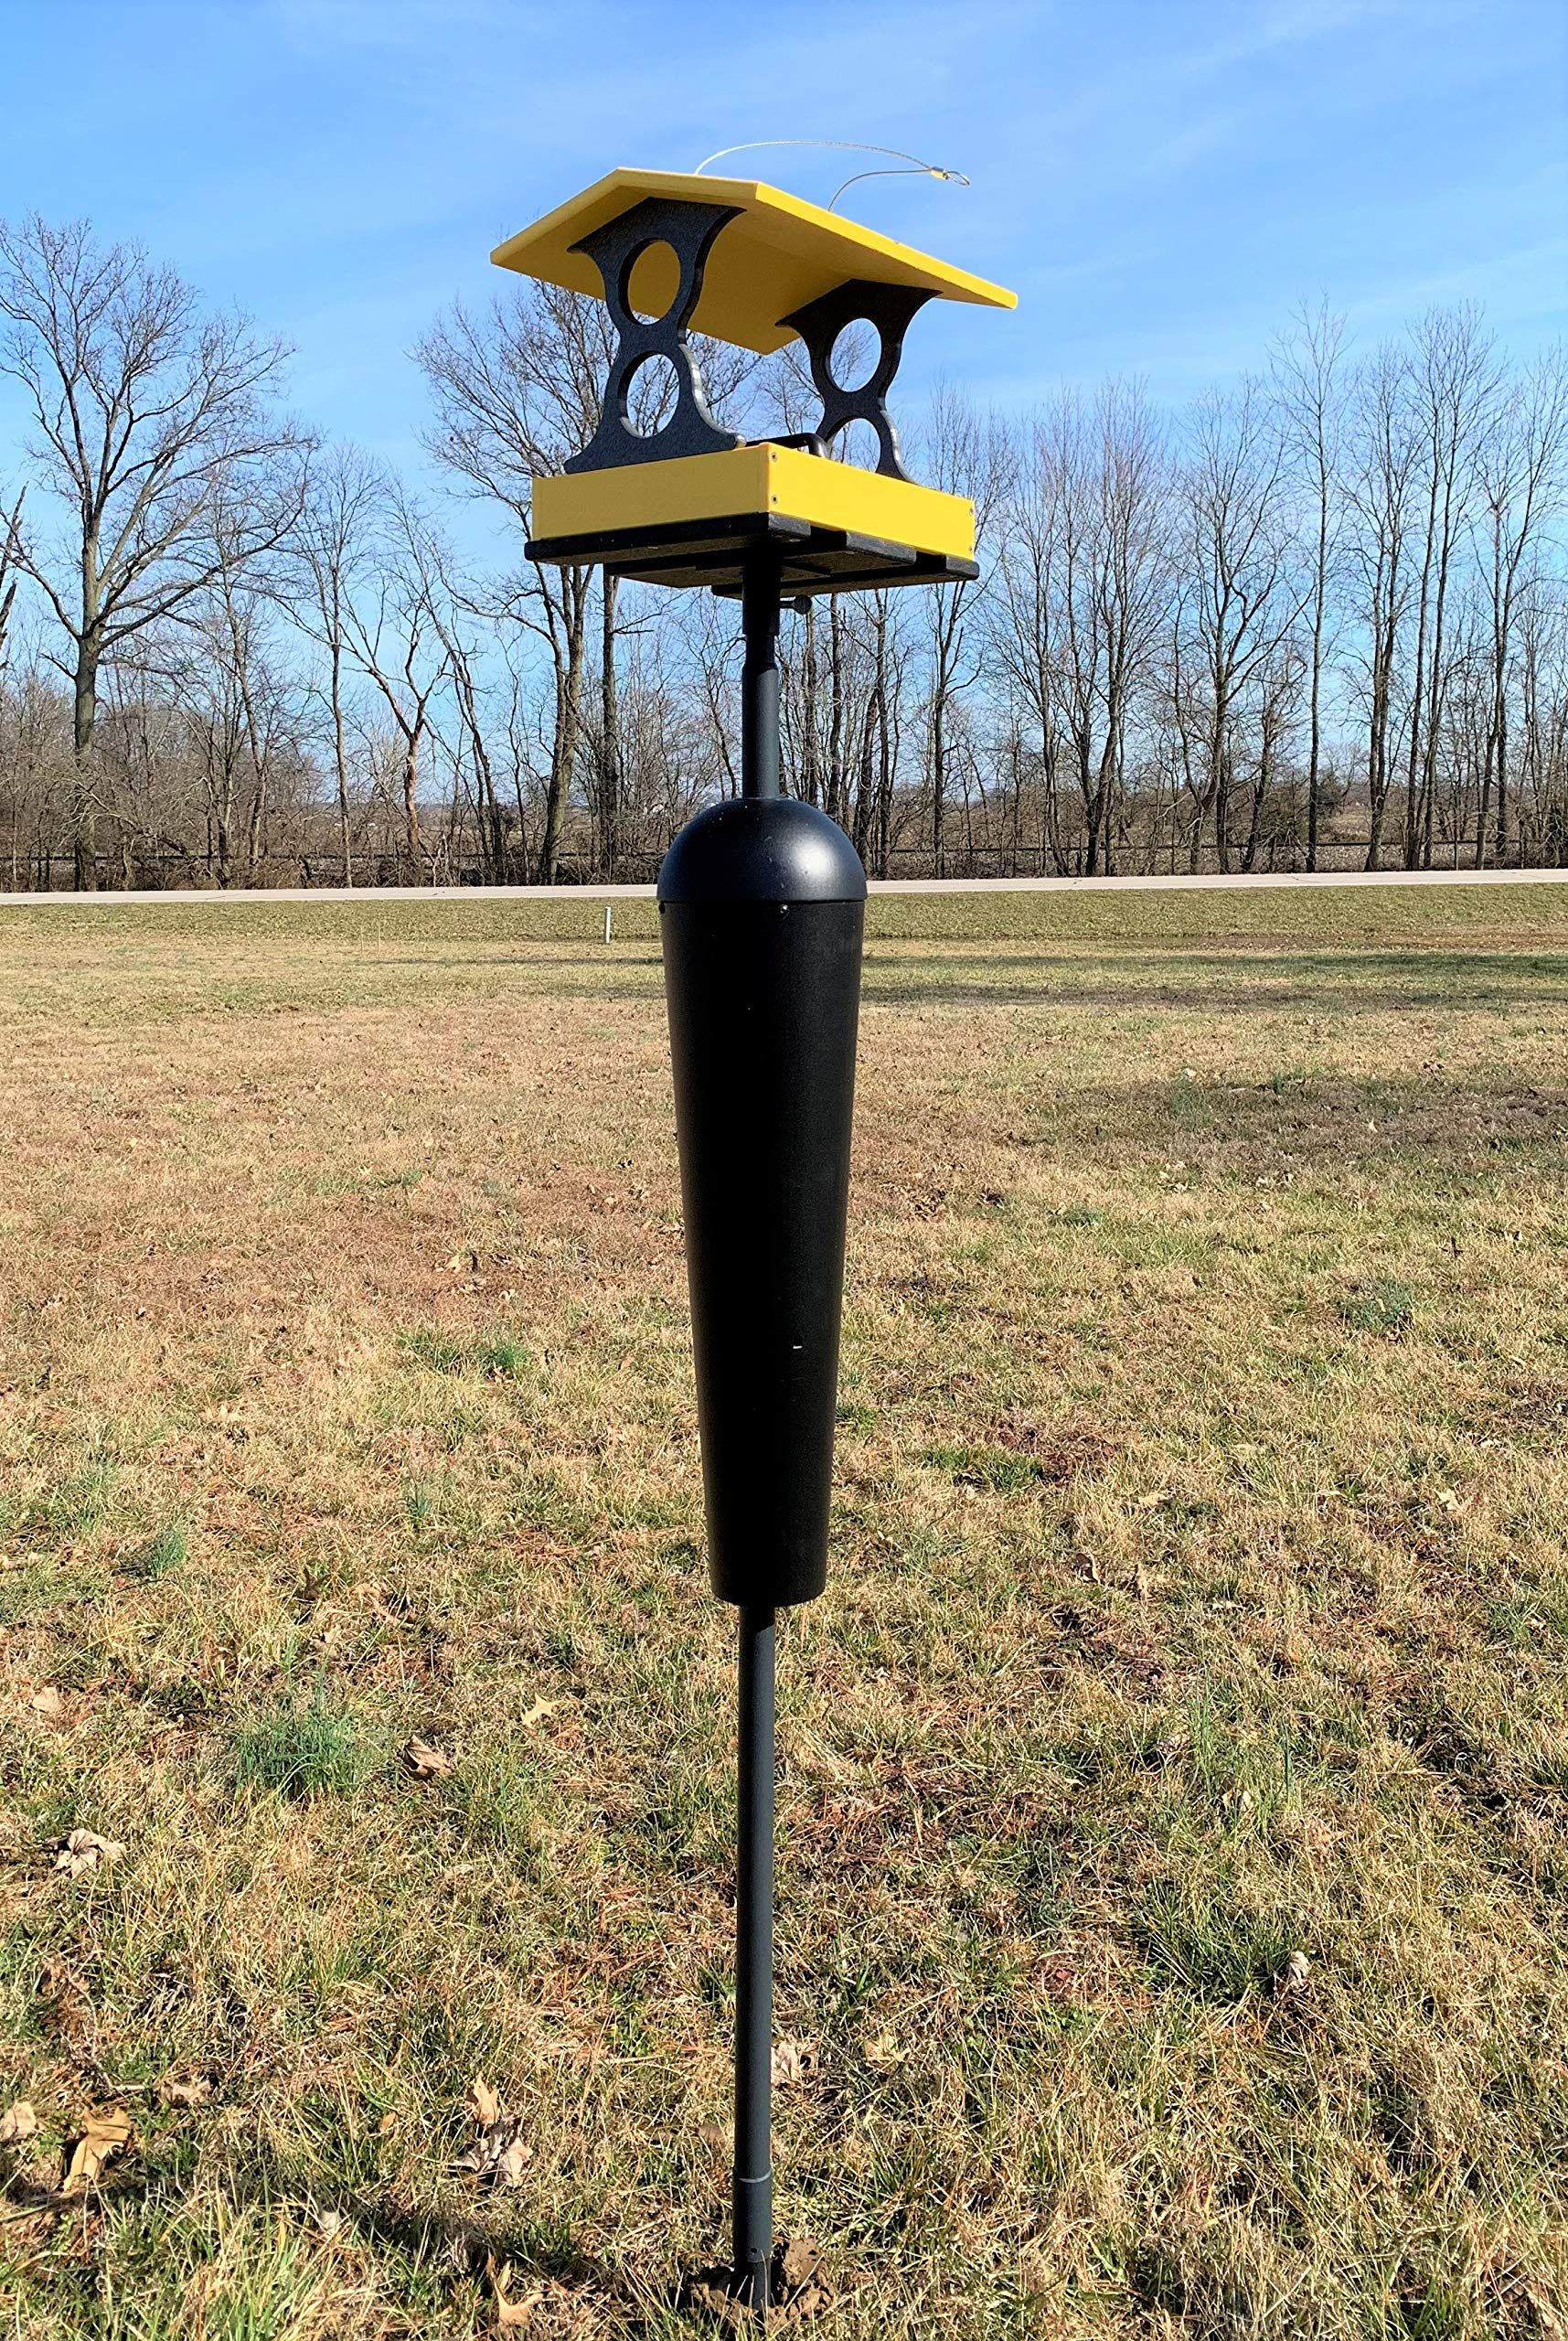 Squirrel Stopper Denali Squirrel Proof Mounting Pole System by Squirrel Stopper (Image #4)